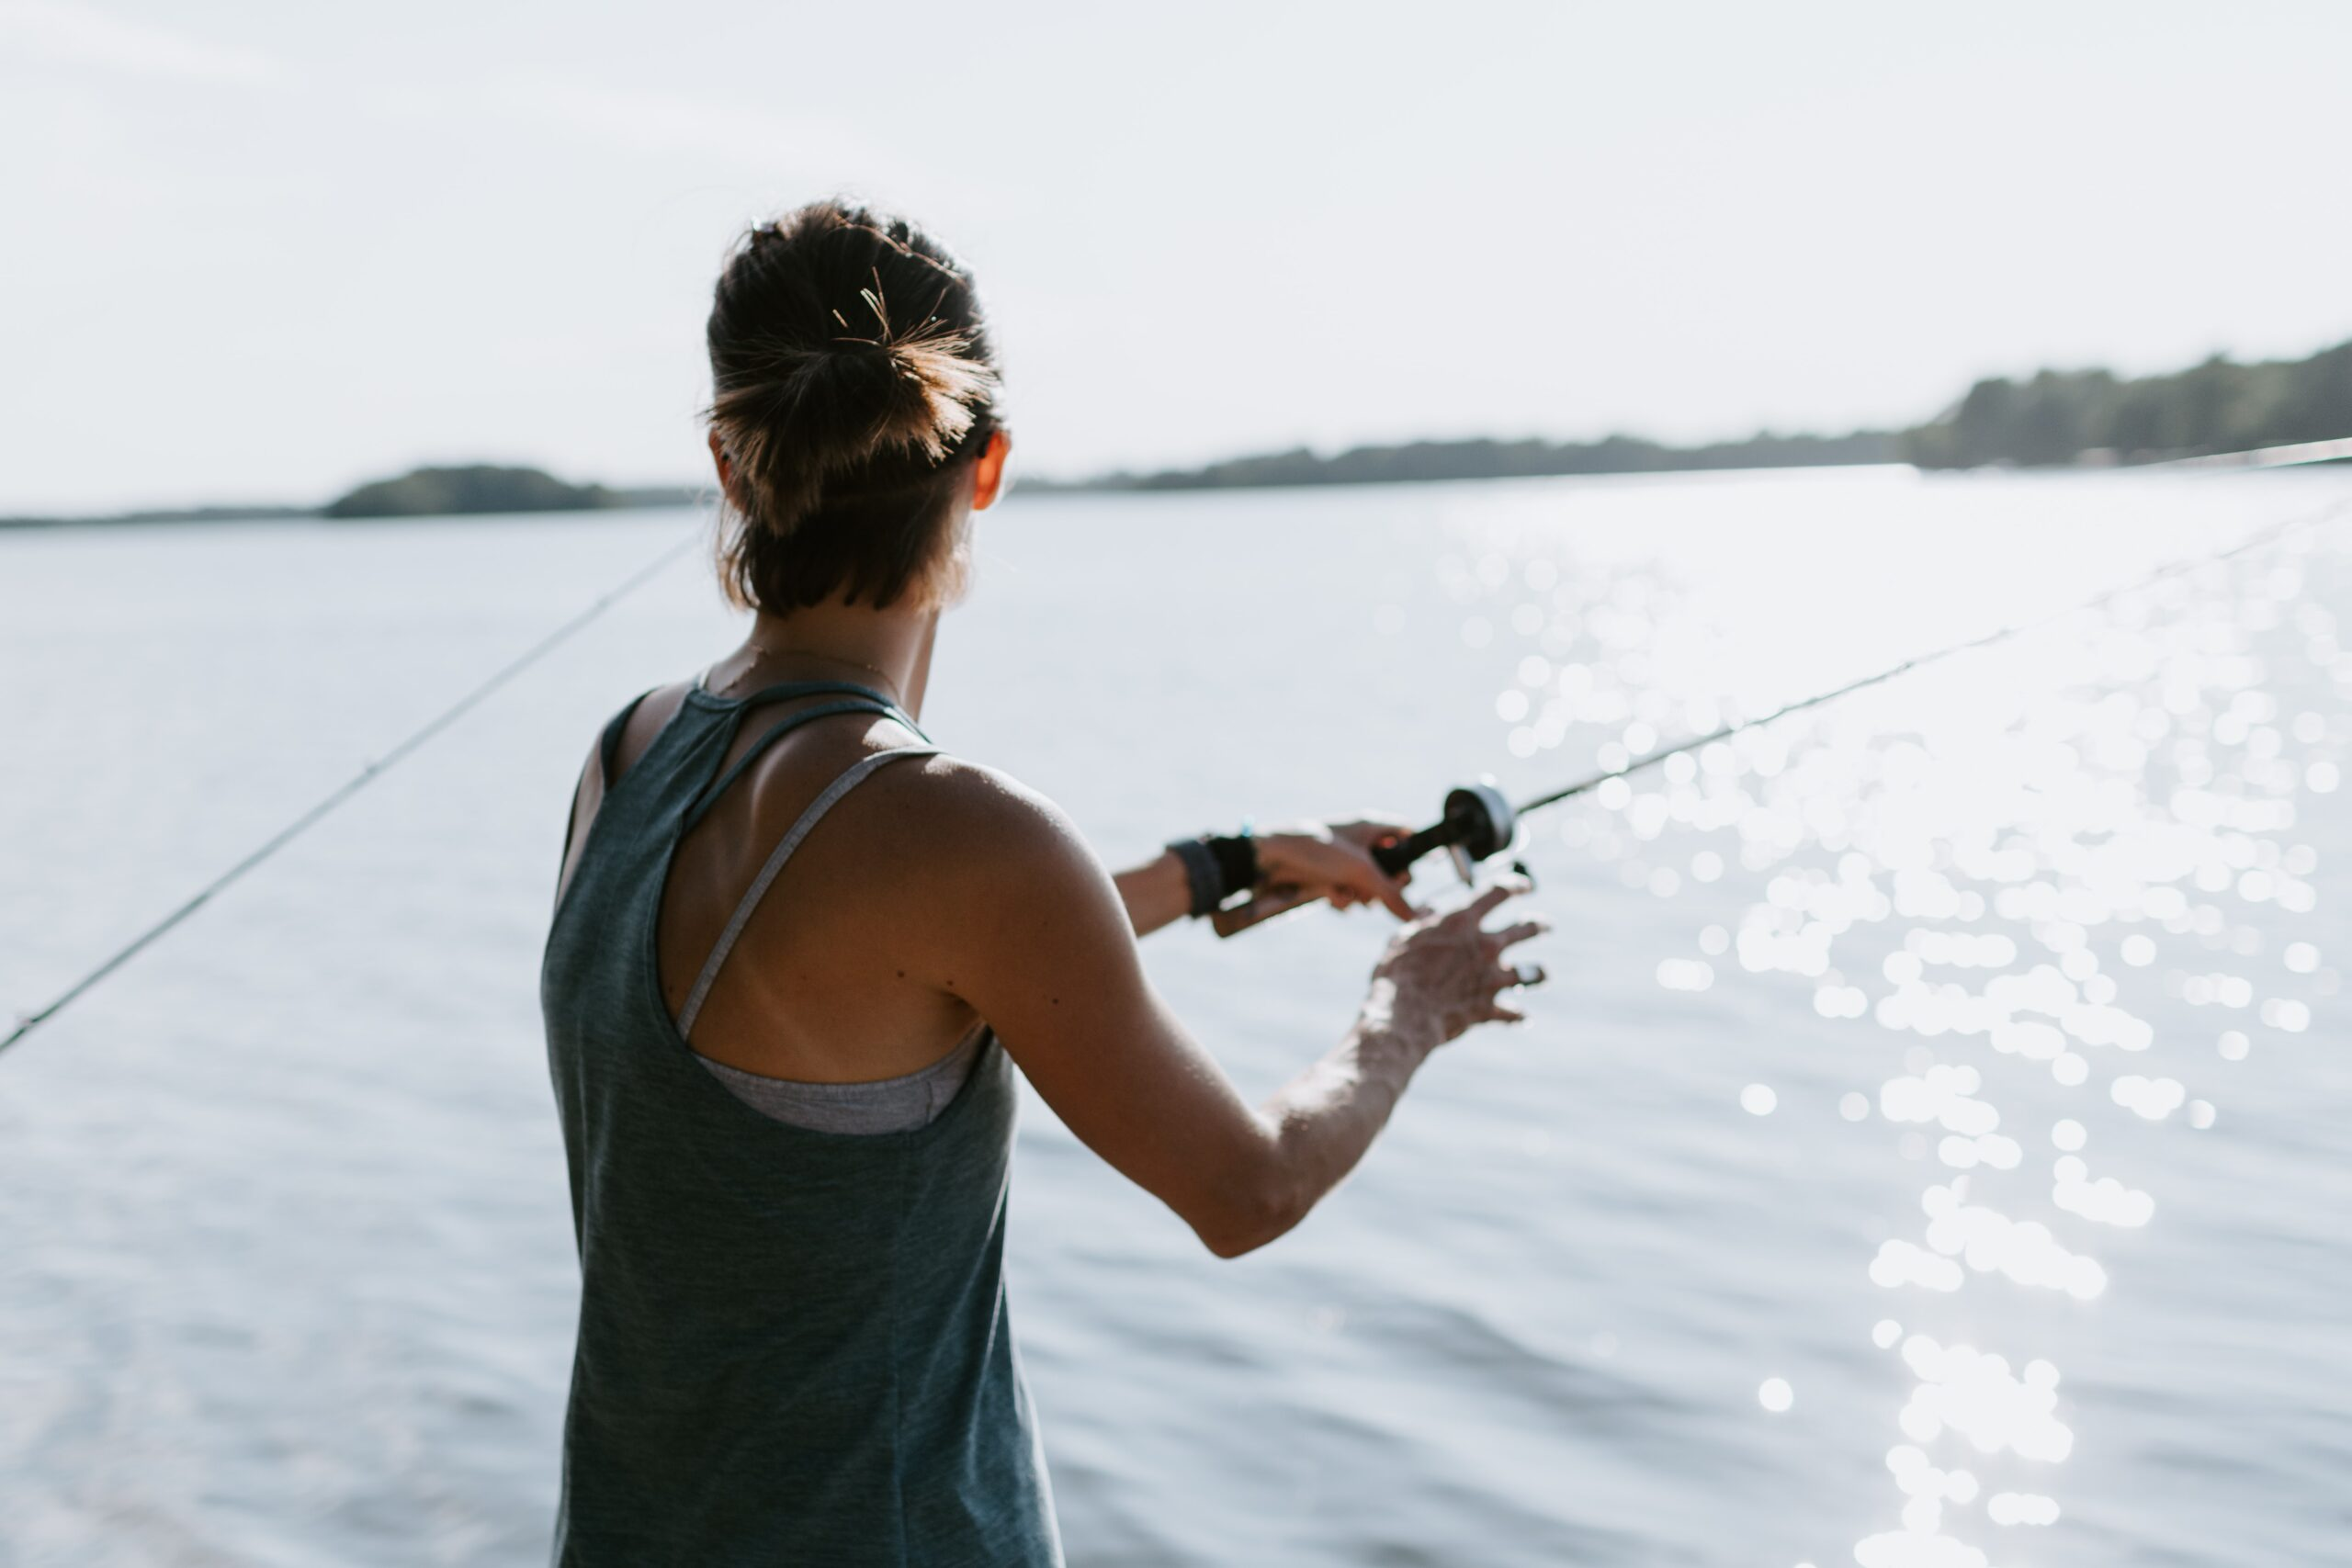 landpass woman anglers in canada